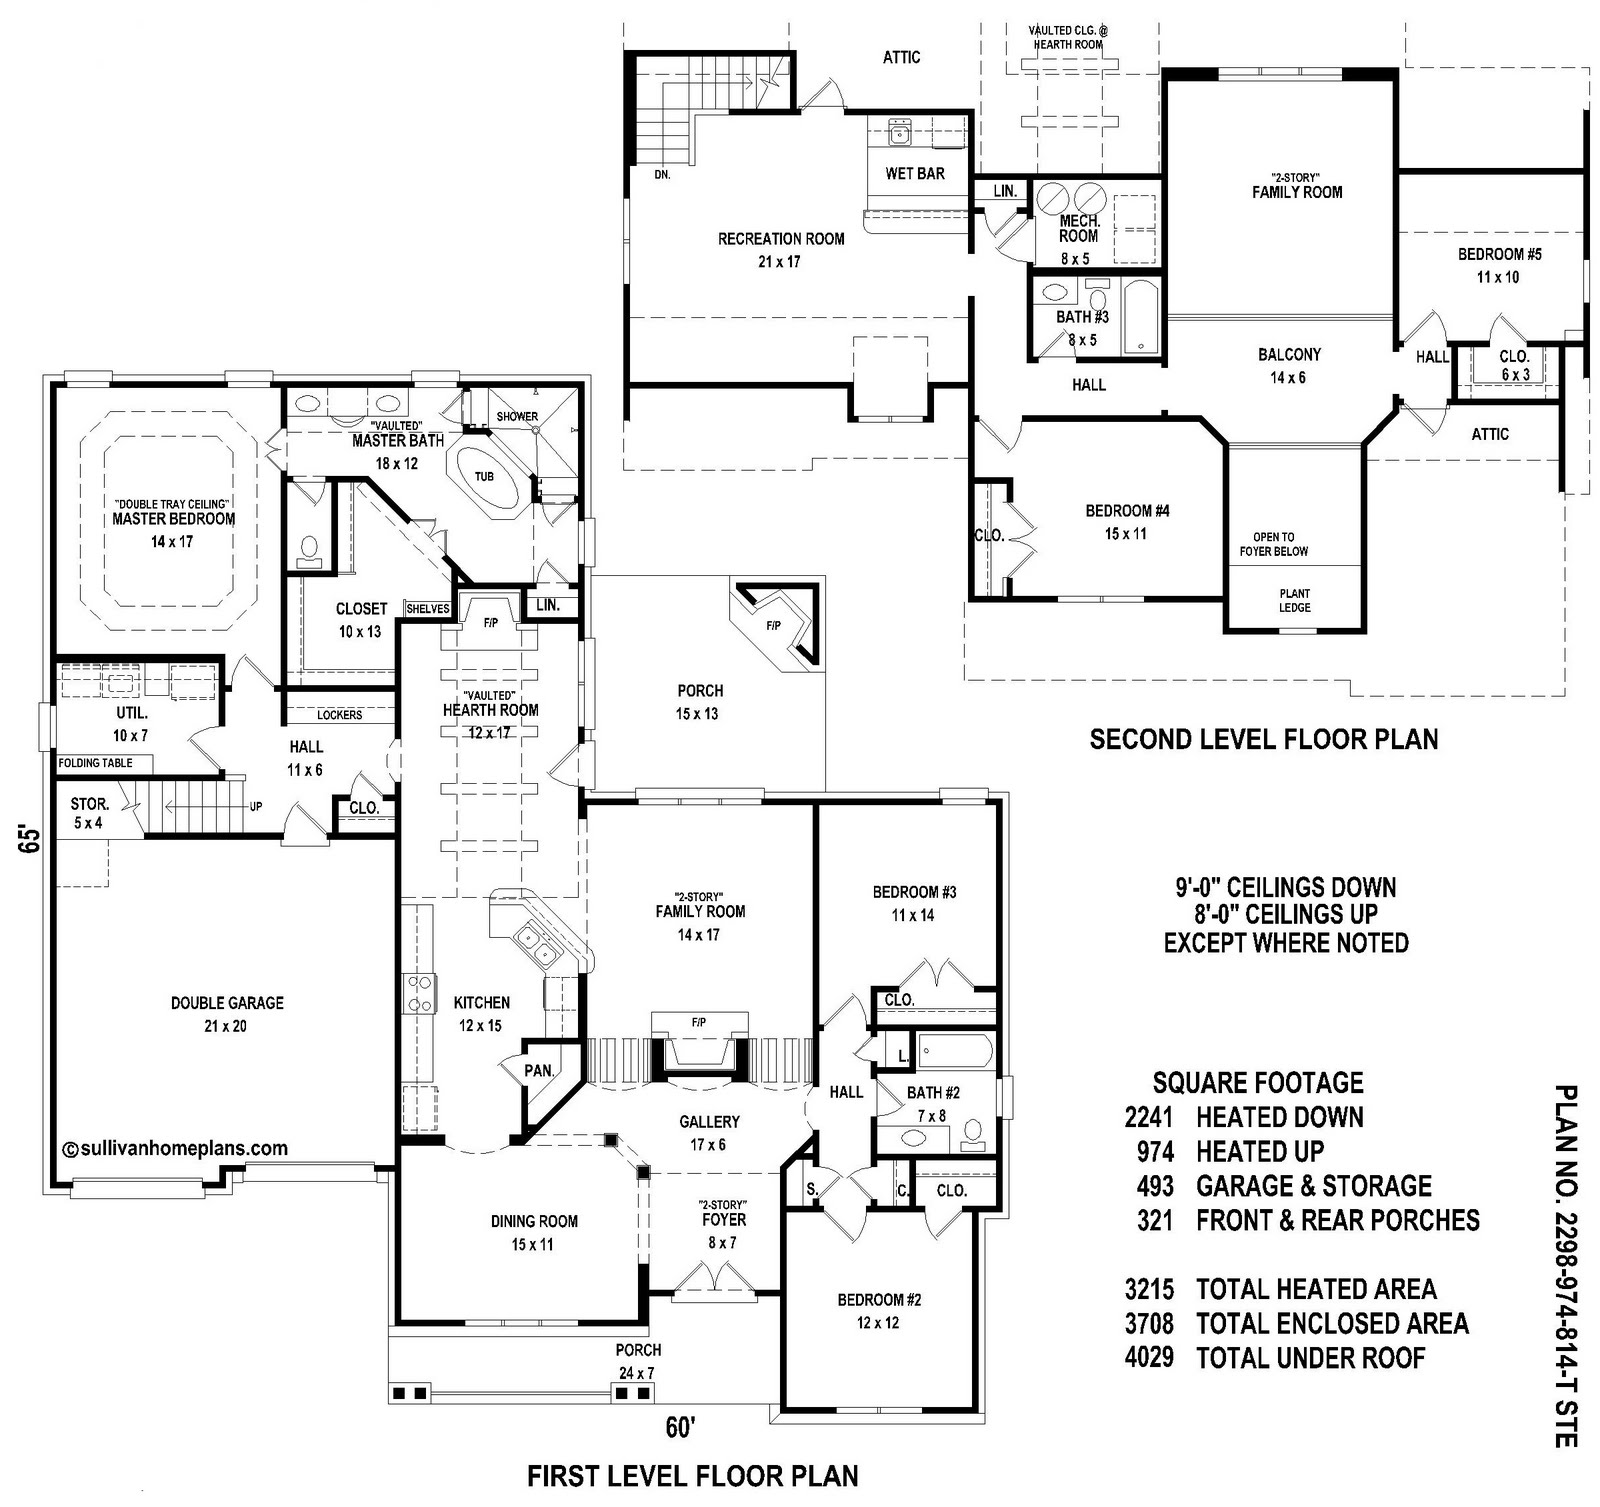 Sullivan home plans june 2010 for Modern 5 bedroom house floor plans